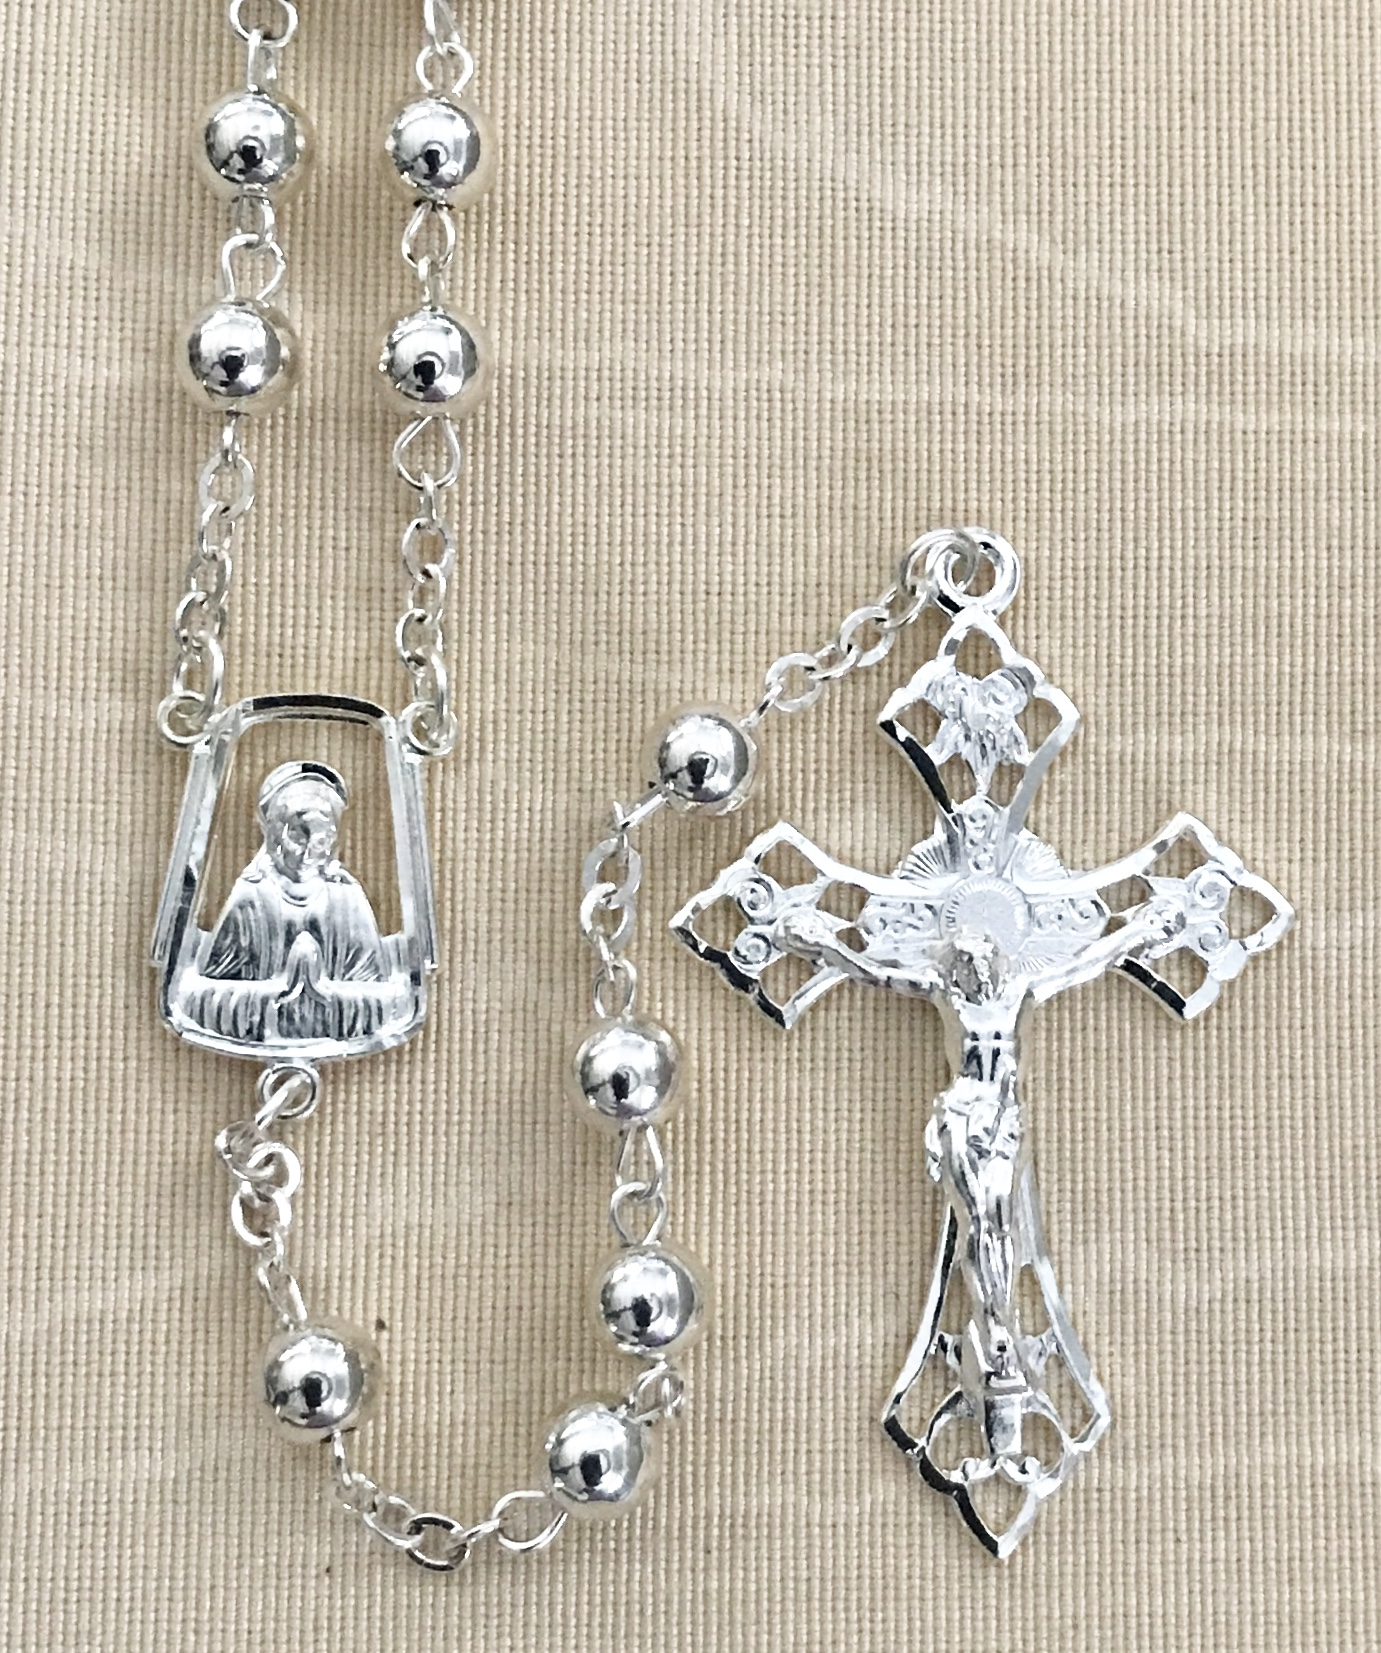 6mm SILVER BEAD ROSARY WITH STERLING SILVER PLATED CRUCIFIX AND CENTER GIFT BOXED